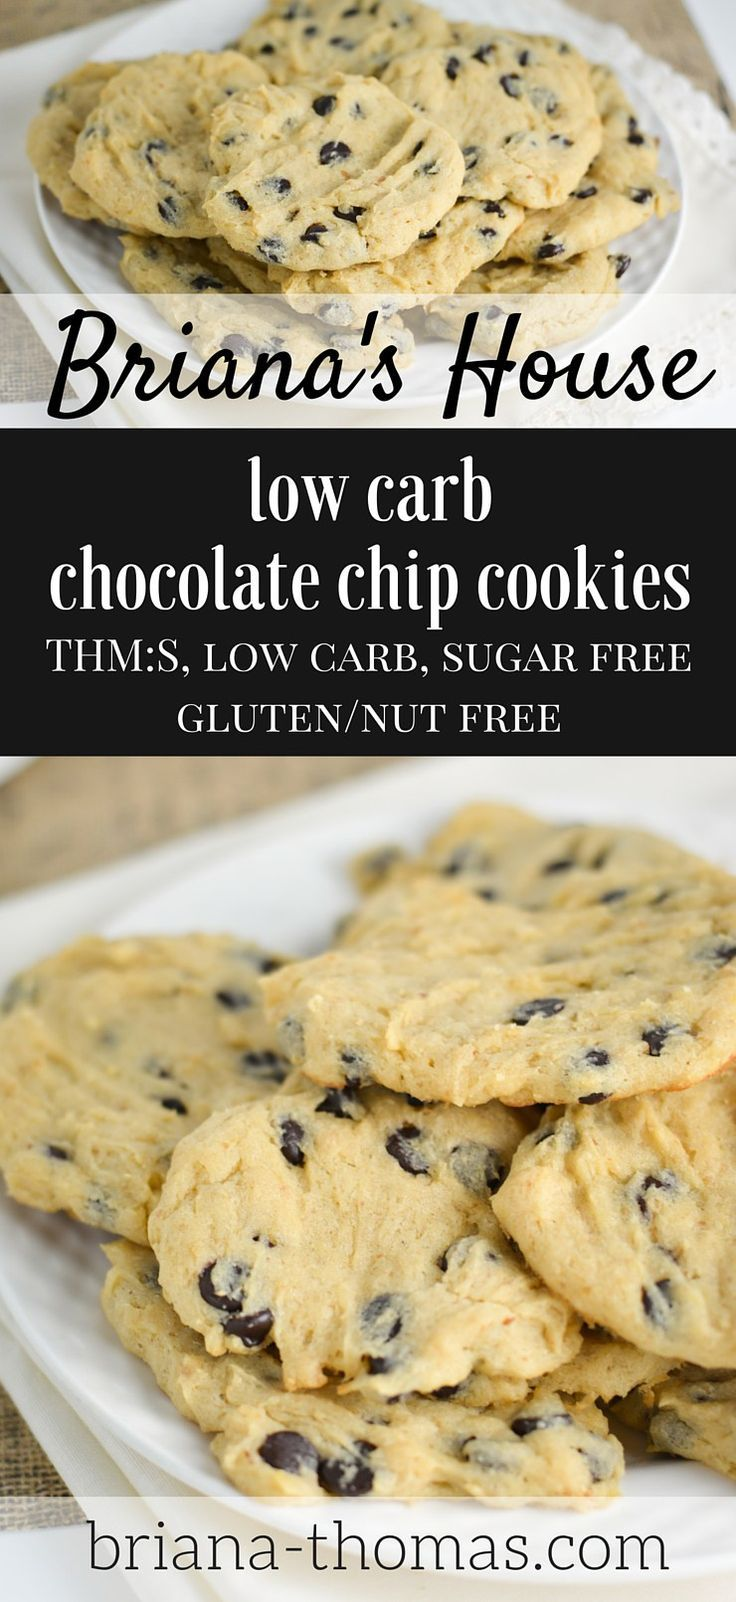 94 best Chocolate Chip Cookie Dough images on Pinterest ...